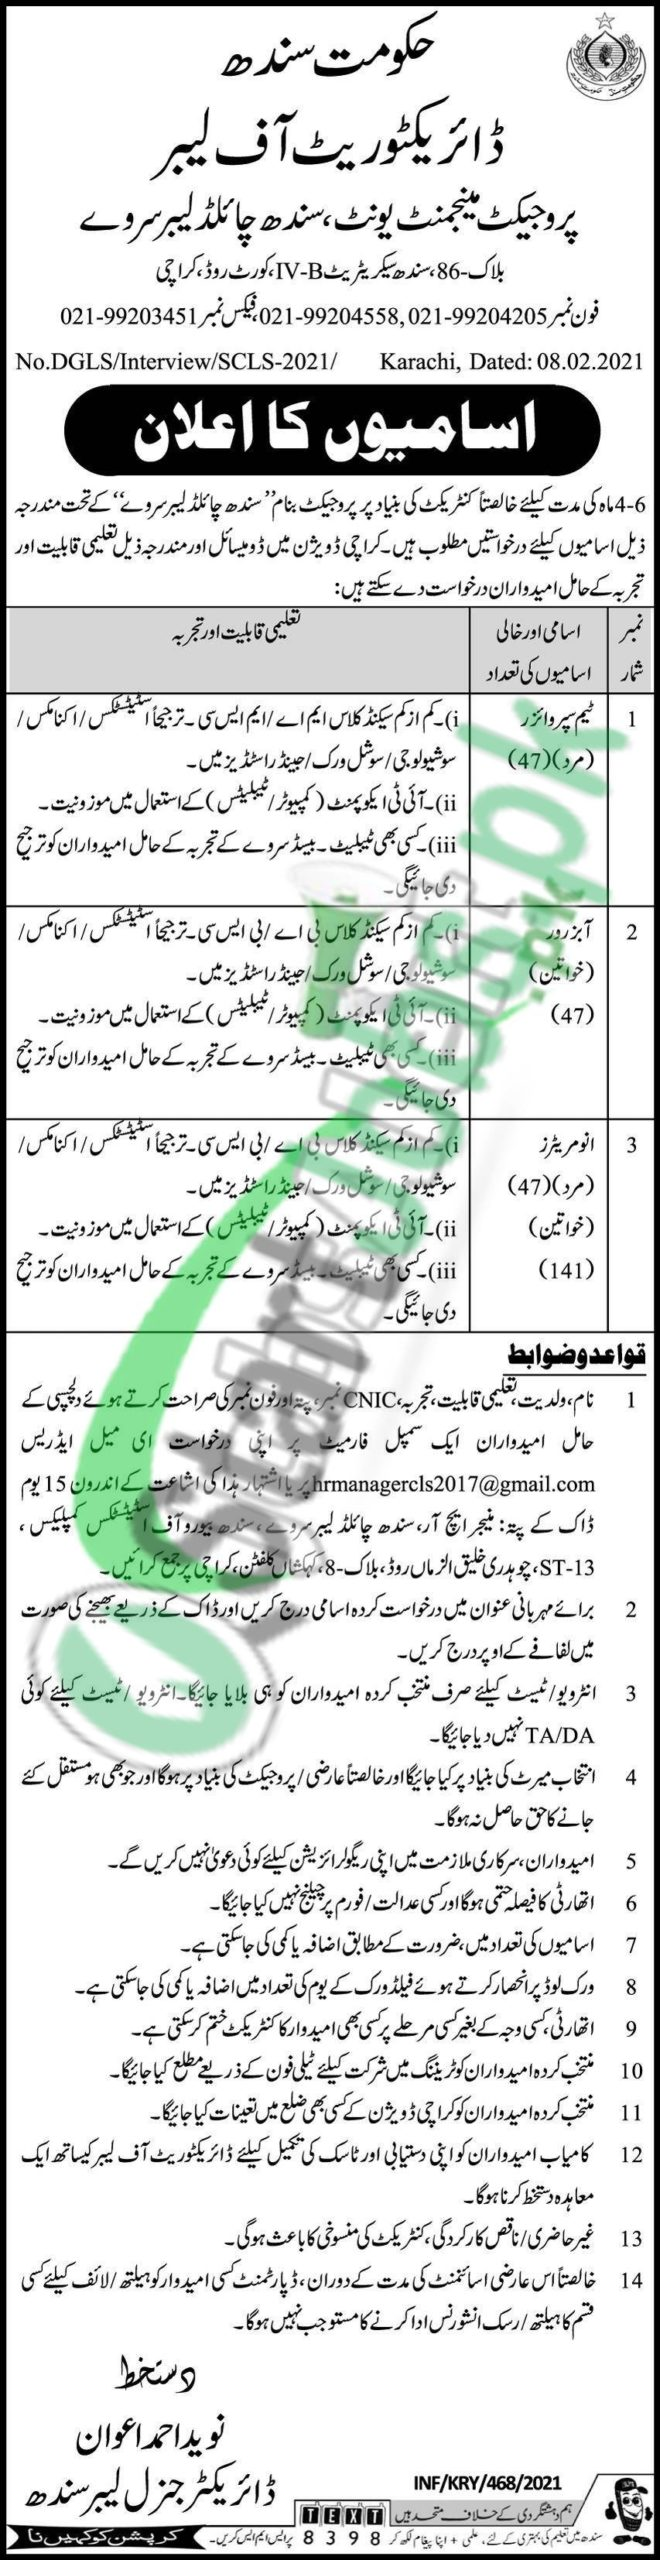 Directorate of Labour Government Of Sindh Jobs 2021 Enumerator & Supervisor